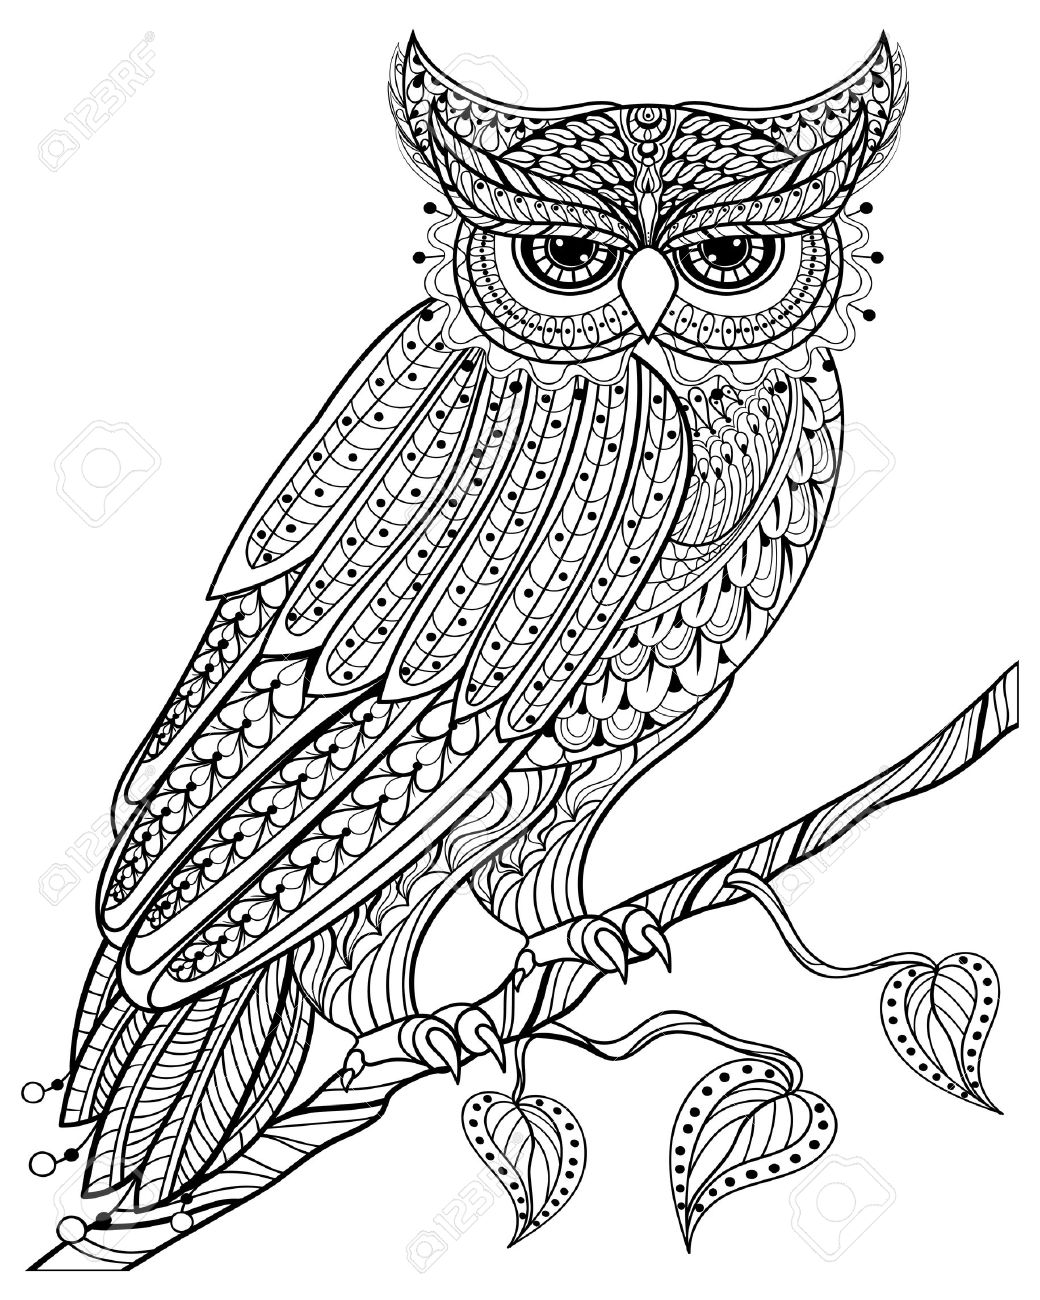 1040x1300 Hand Drawn Magic Owl Sitting On Branch For Adult Anti Stress